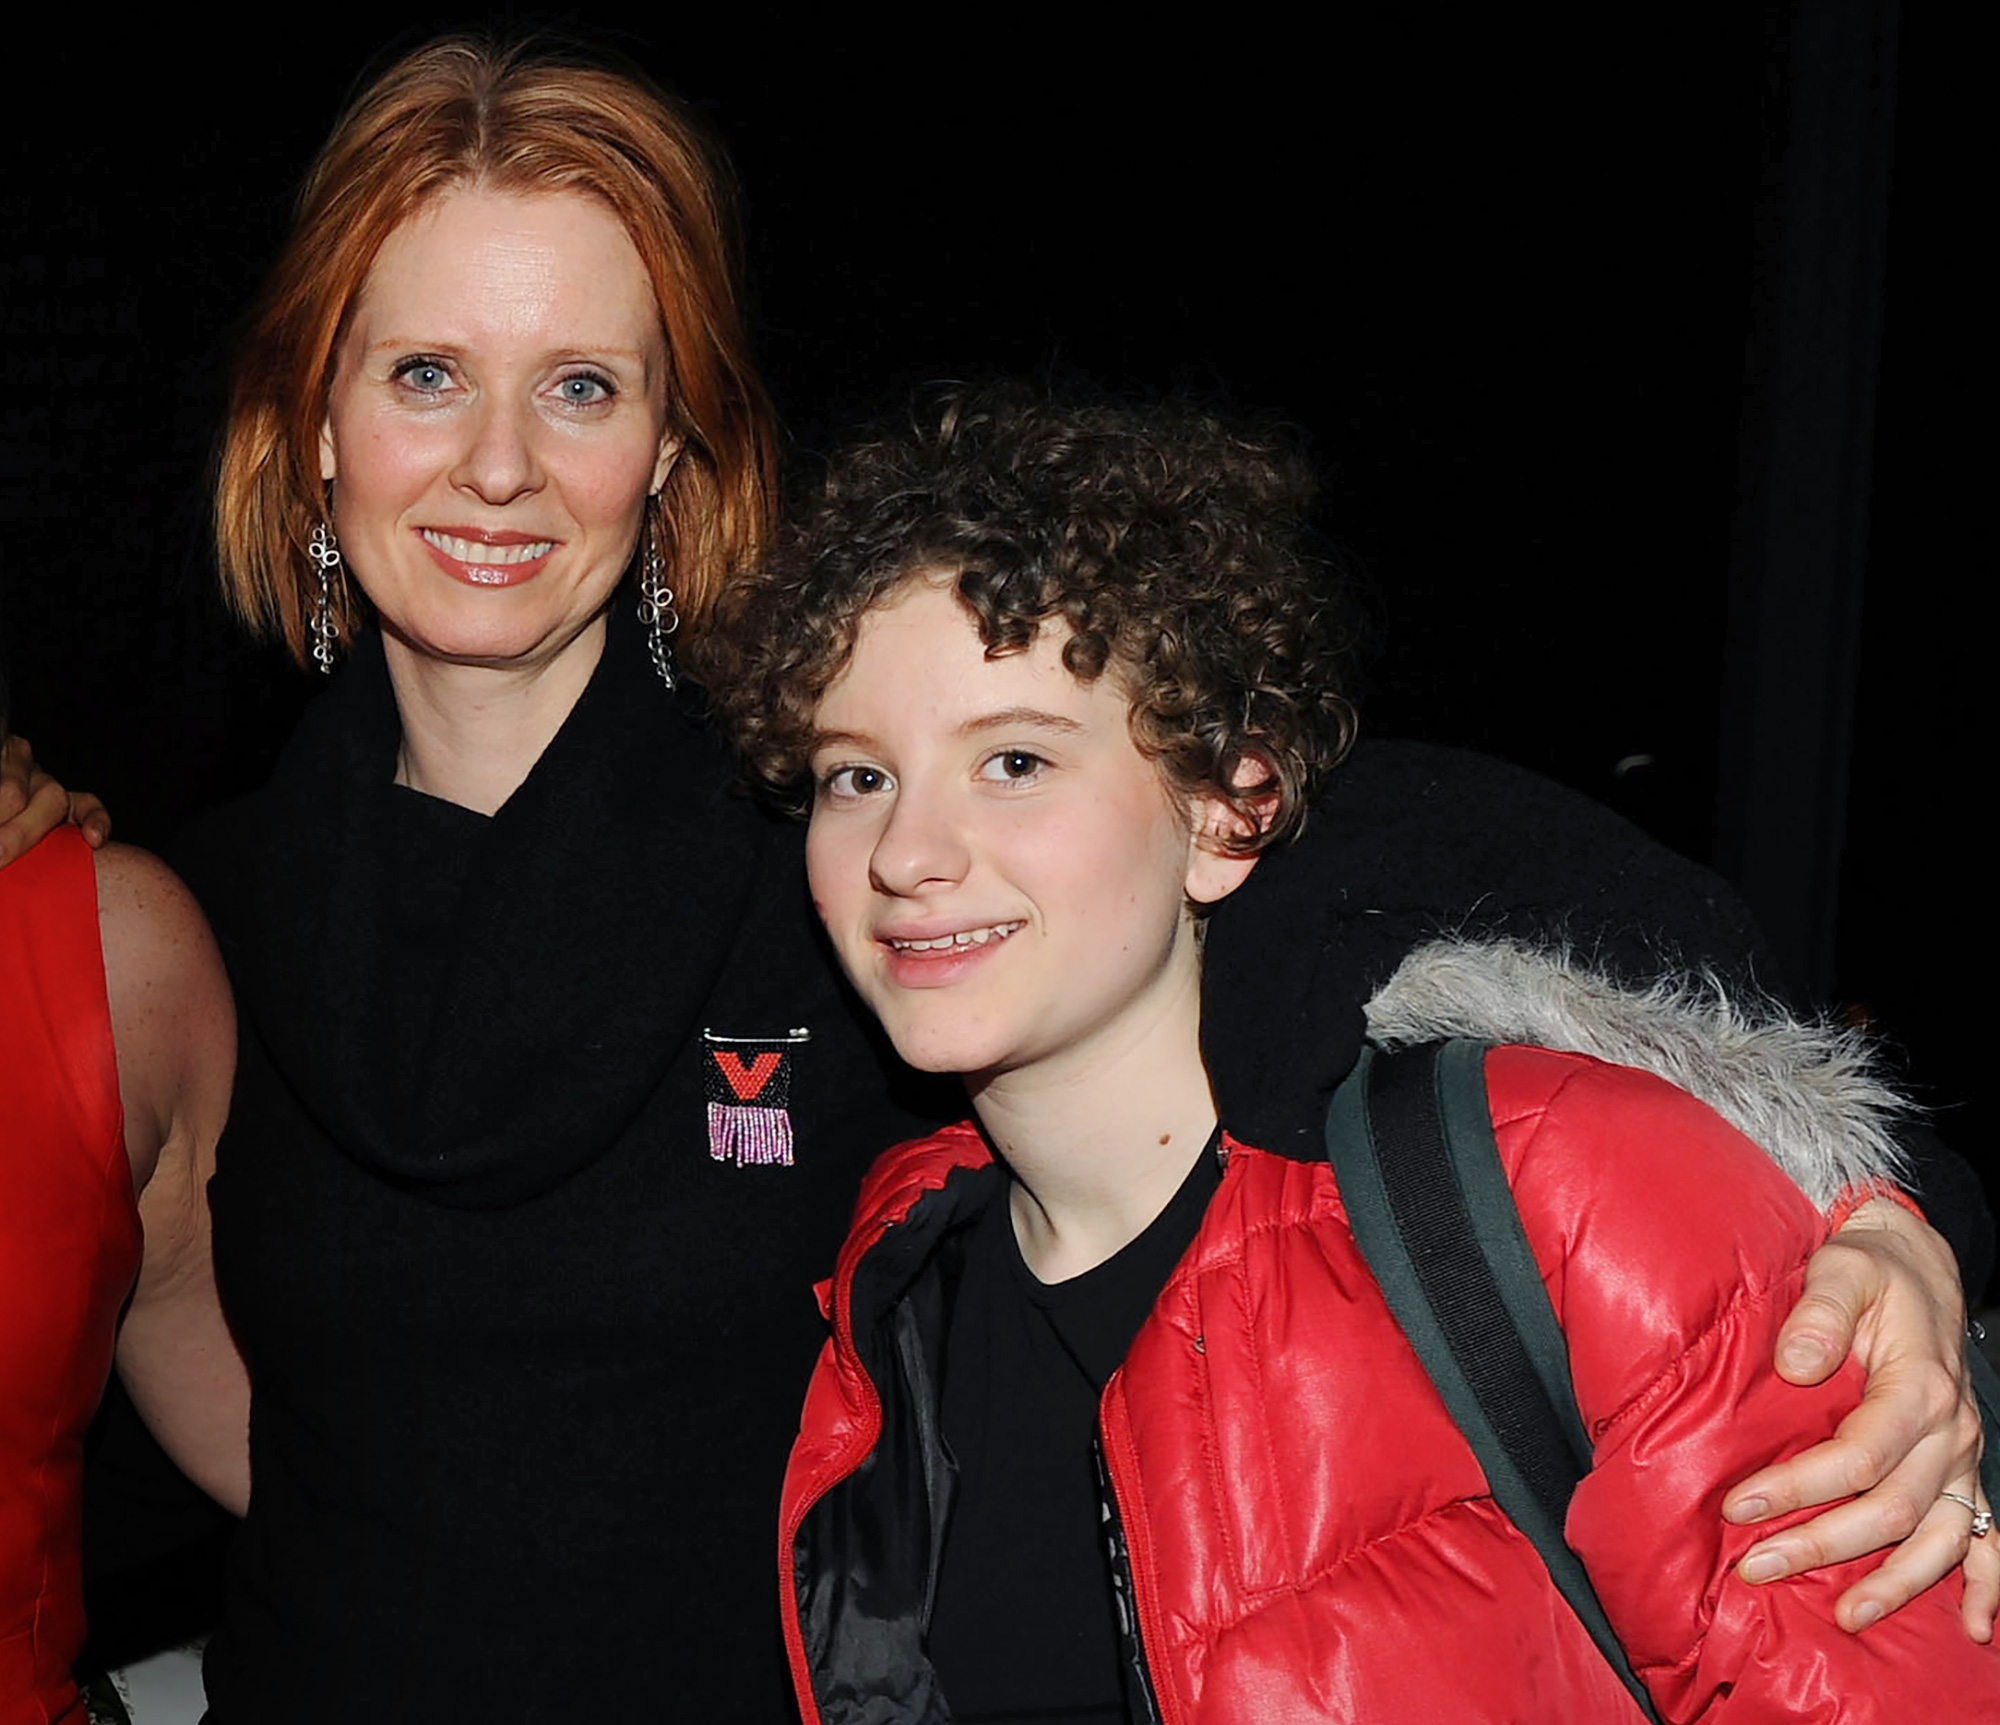 Cynthia Nixon, Samantha, Transgender, Son, Samuel - Cynthia Nixon and Samuel attend the V-Day benefit reading of Eve Ensler's new work 'I Am An Emotional Creature: The Secret Life Of Girls Around The World' at the Urban Zen Center At Stephan Weiss Studio on February 5, 2010 in New York City.